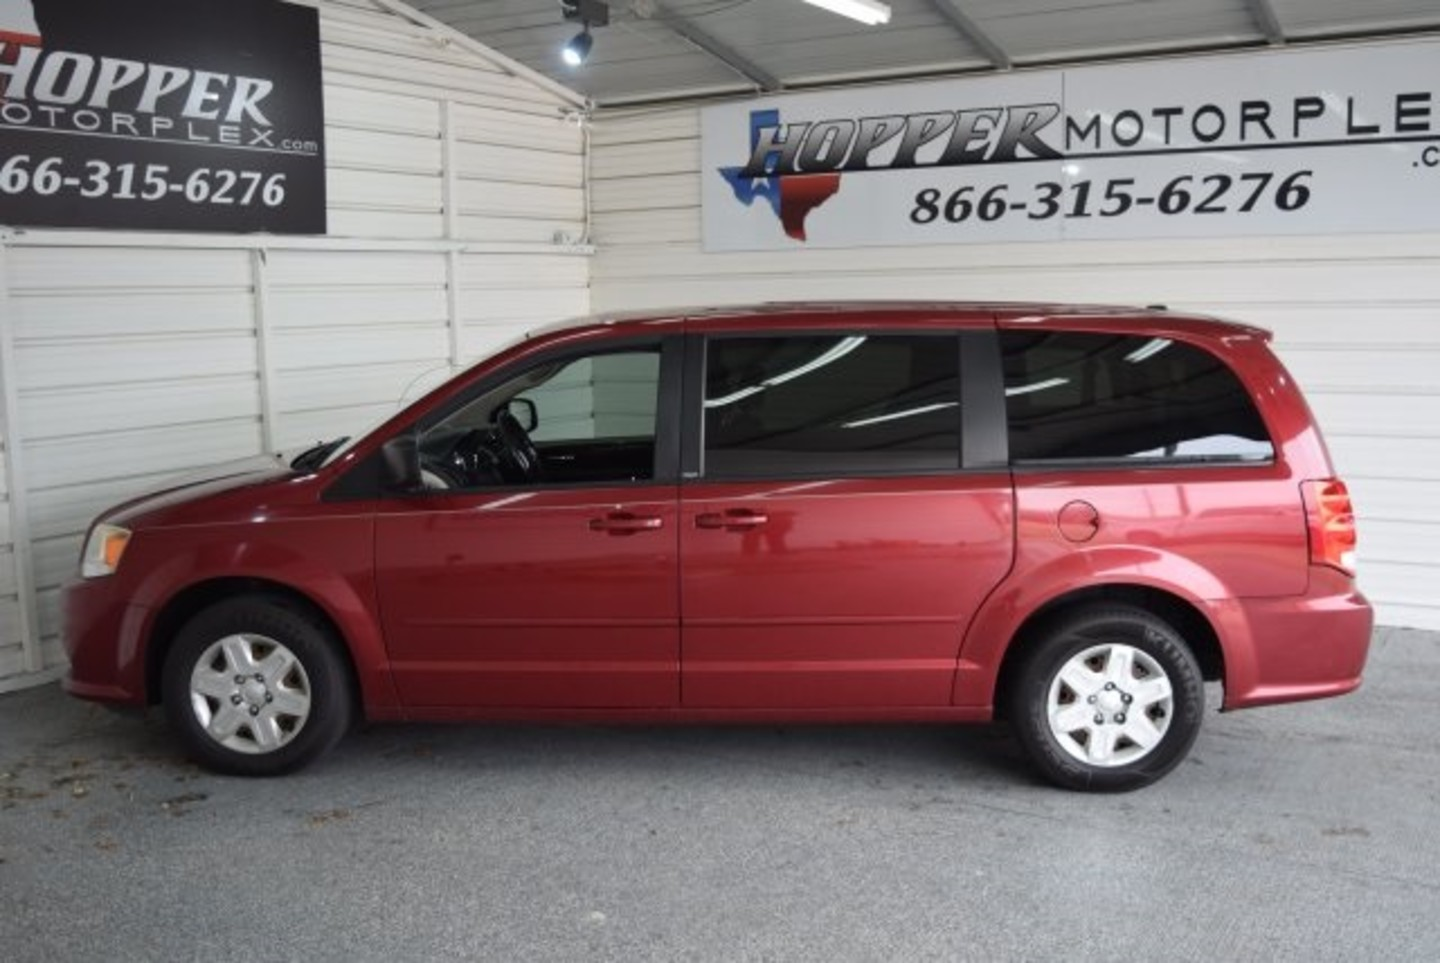 2011 dodge grand caravan express city texas hopper motorplex included. Cars Review. Best American Auto & Cars Review